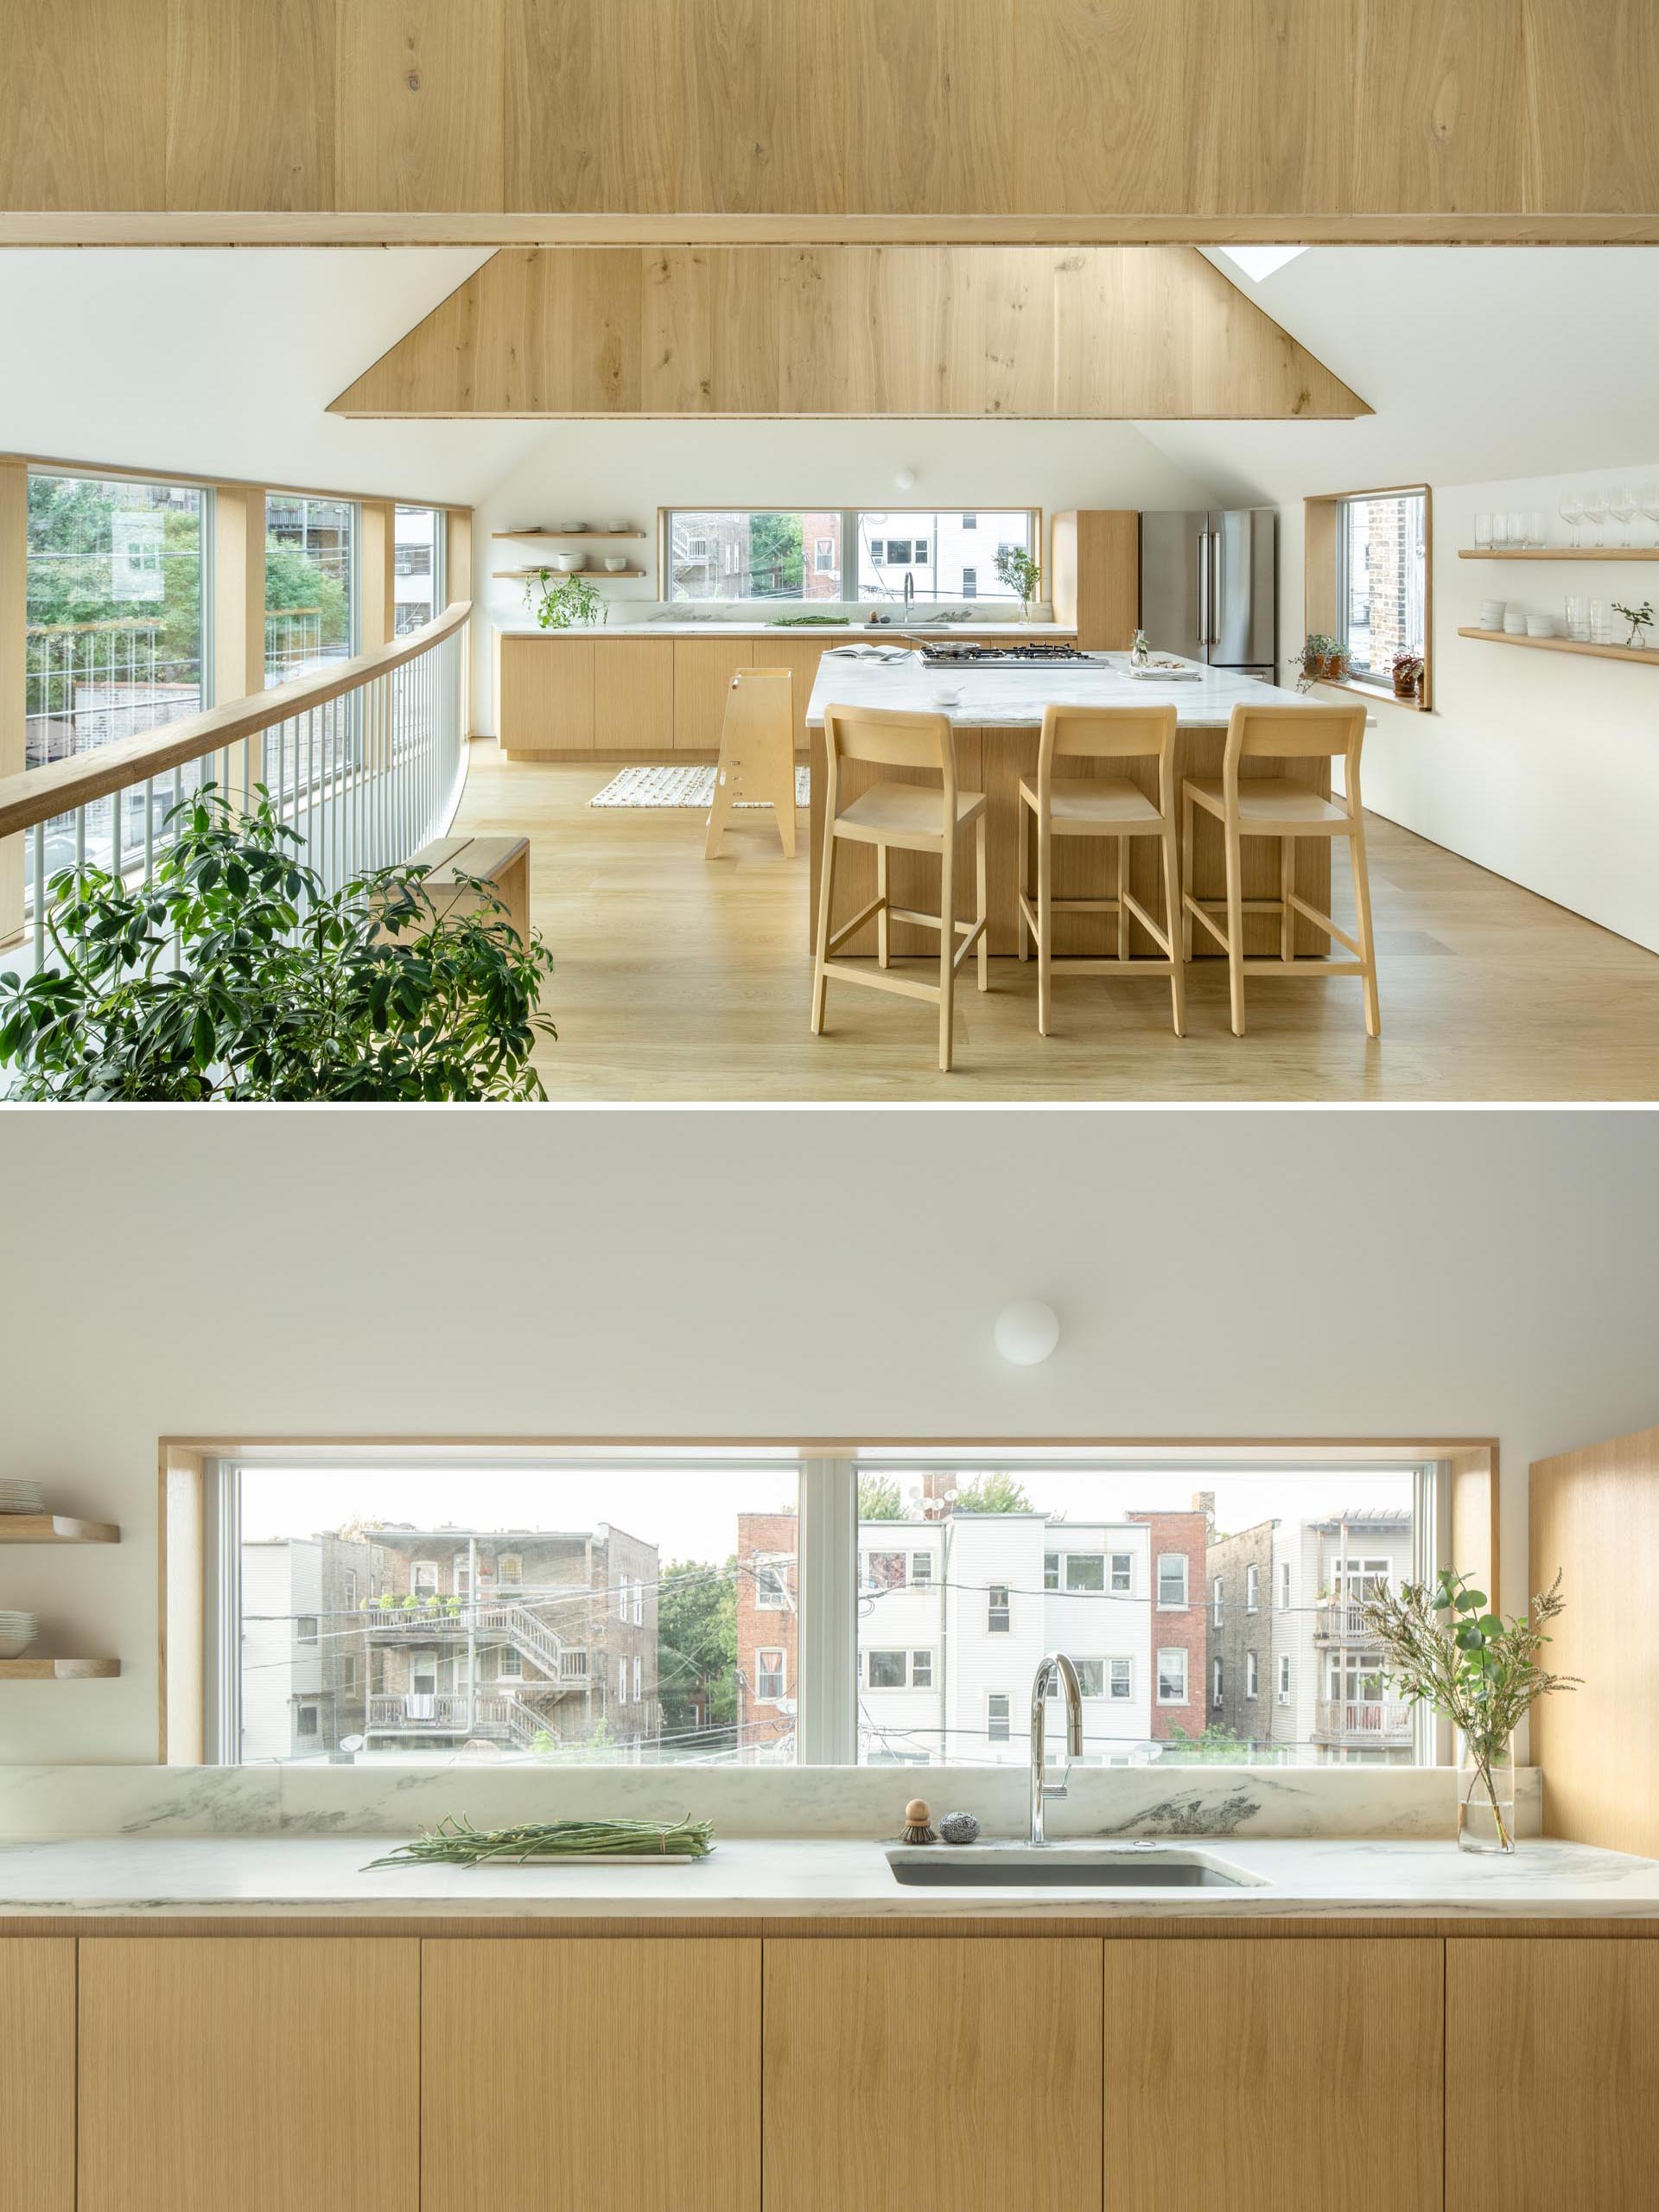 This modern kitchen has floating wood shelves, white countertops, and an island with seating.